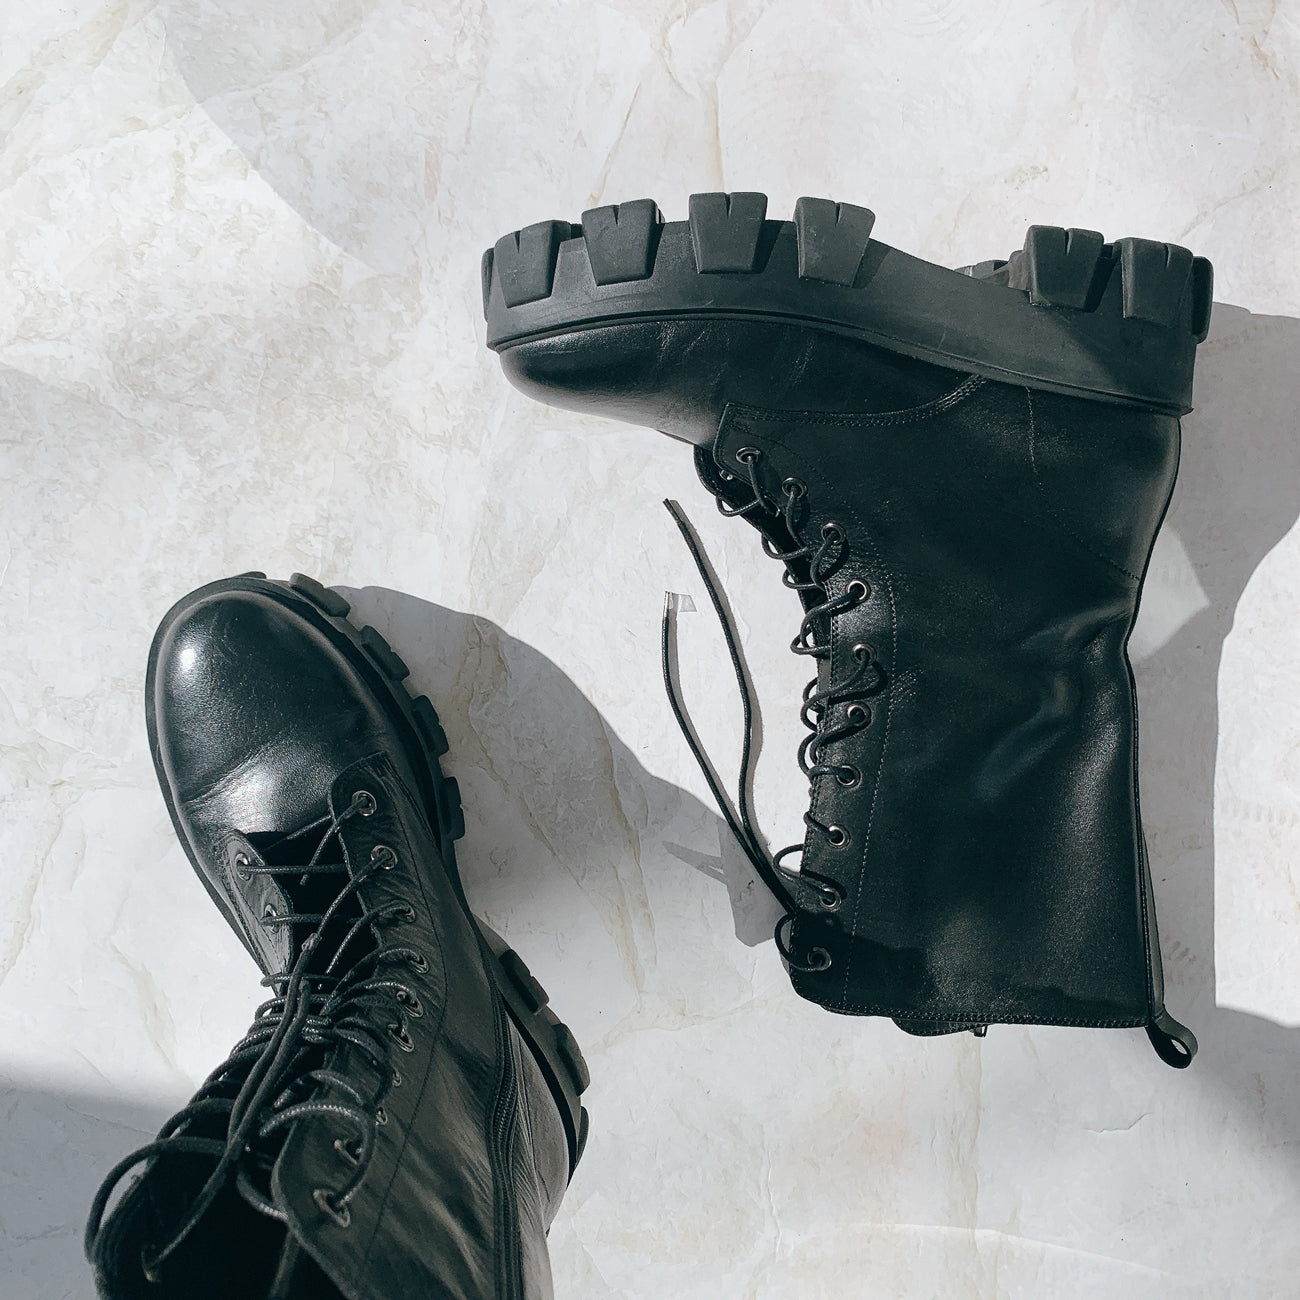 THE NV COMBAT BOOT